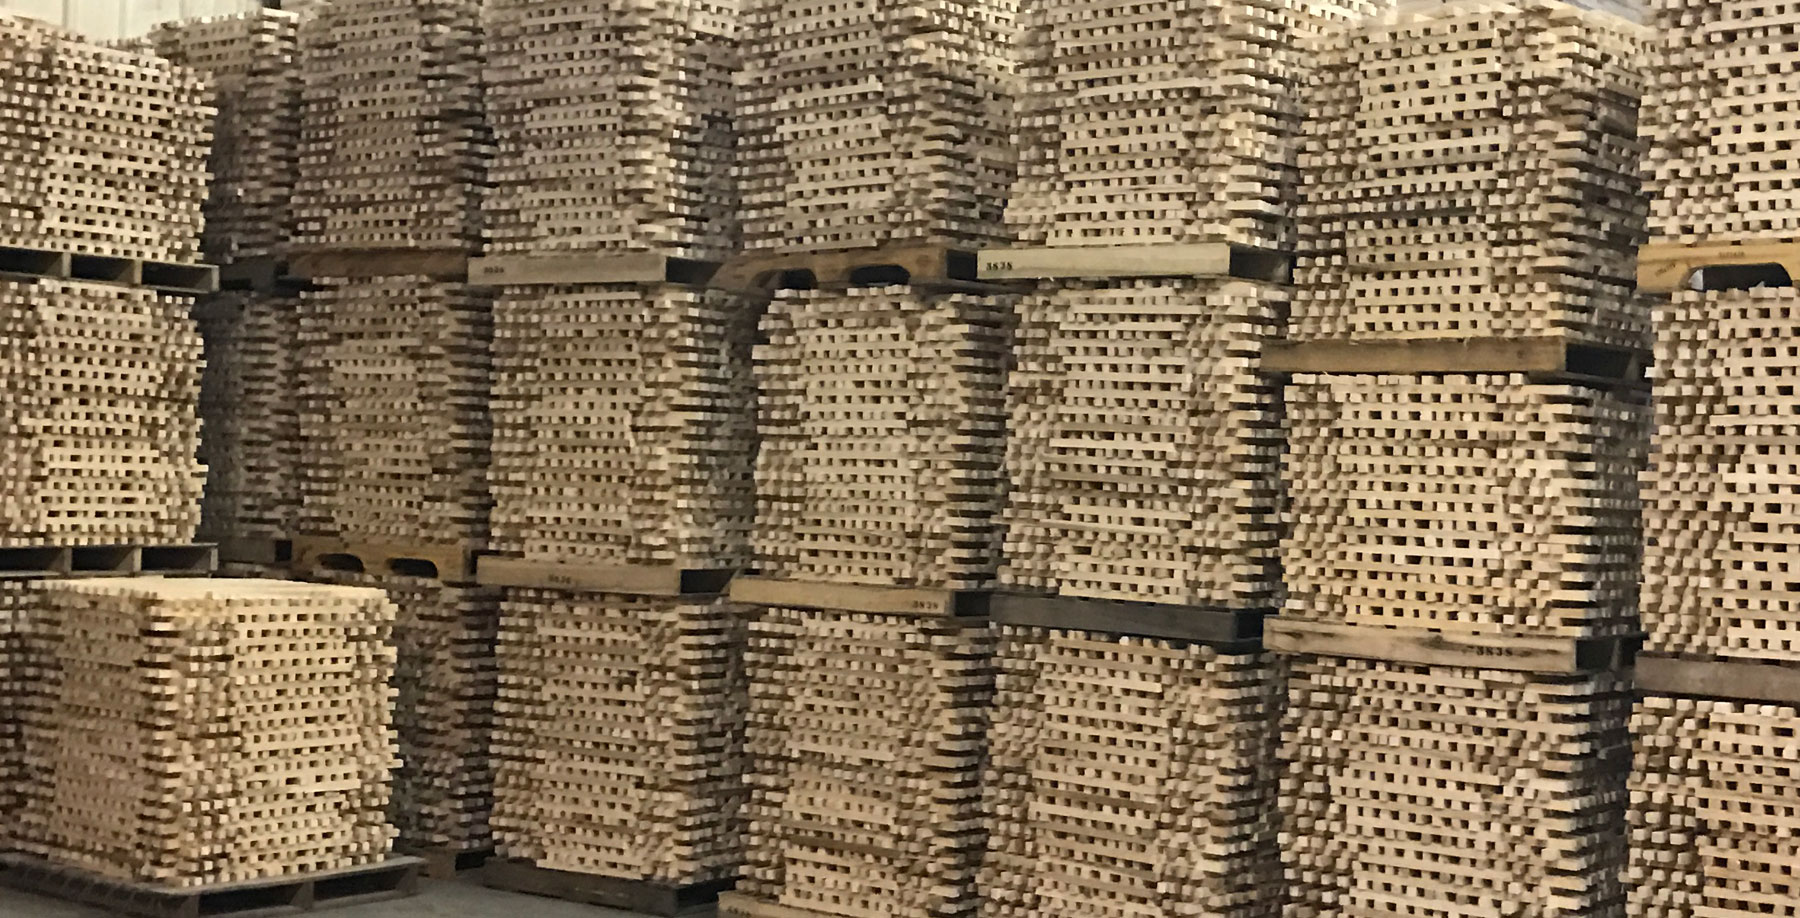 Wood-Stakes-Stacked-Drying.jpg